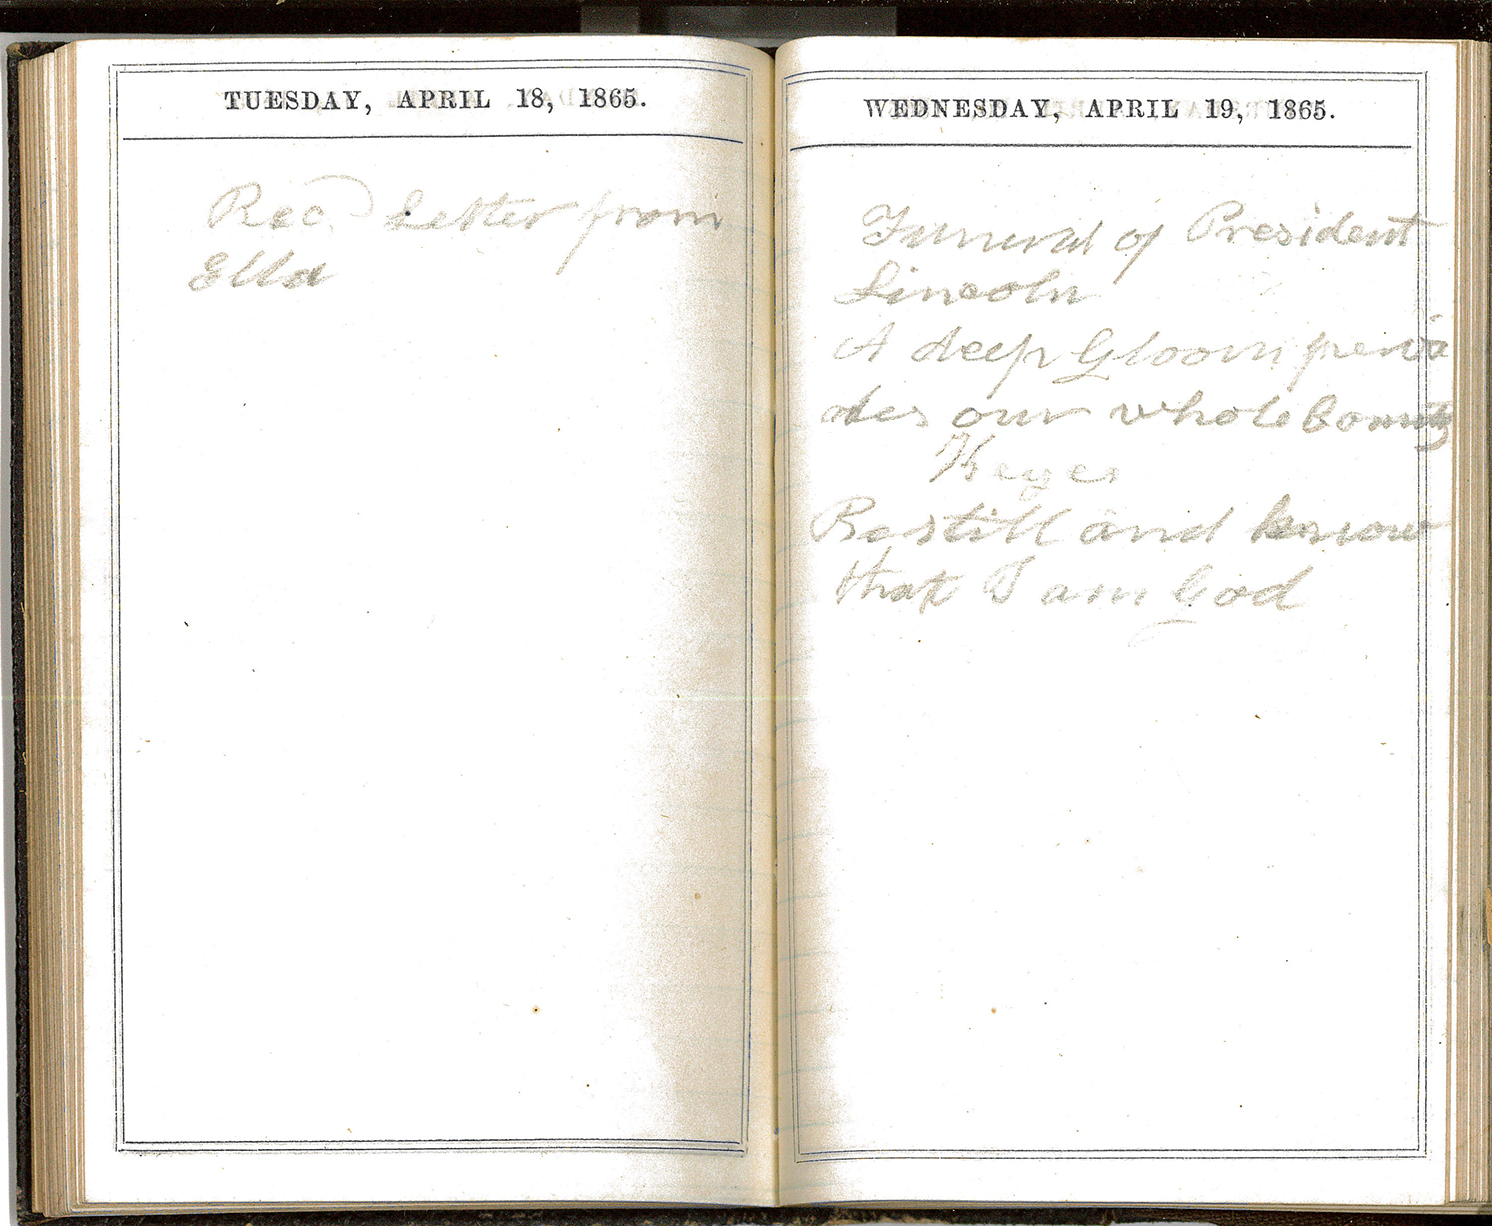 Journal – Tuesday April 18 1865, Wednesday April 19